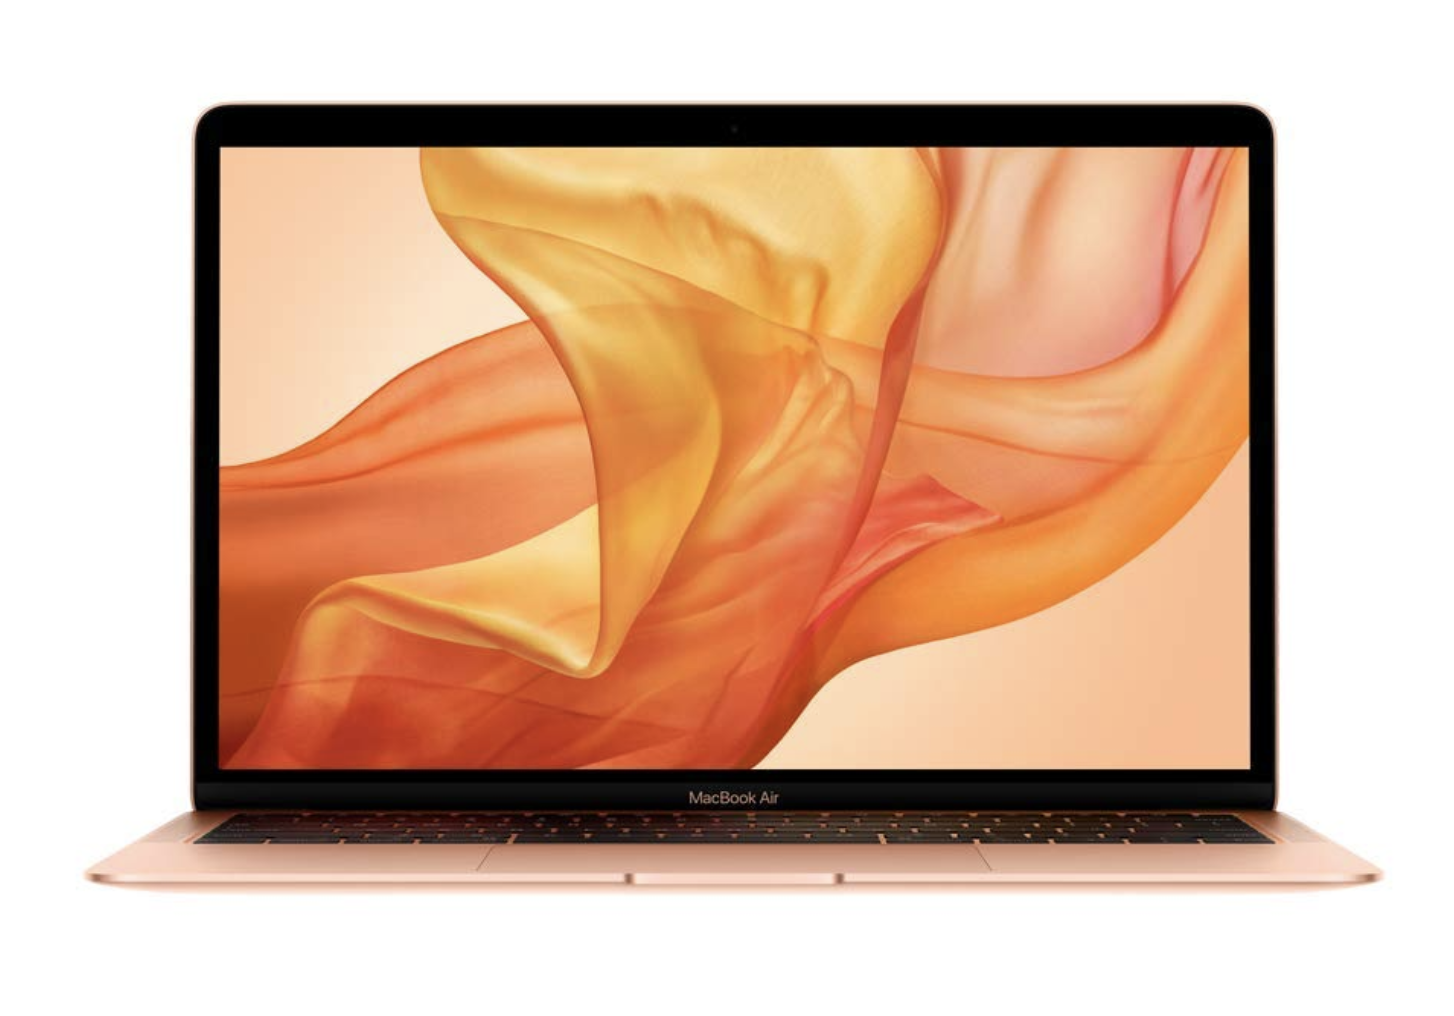 New Apple MacBook Air (13-inch, 8GB RAM, 128GB Storage)